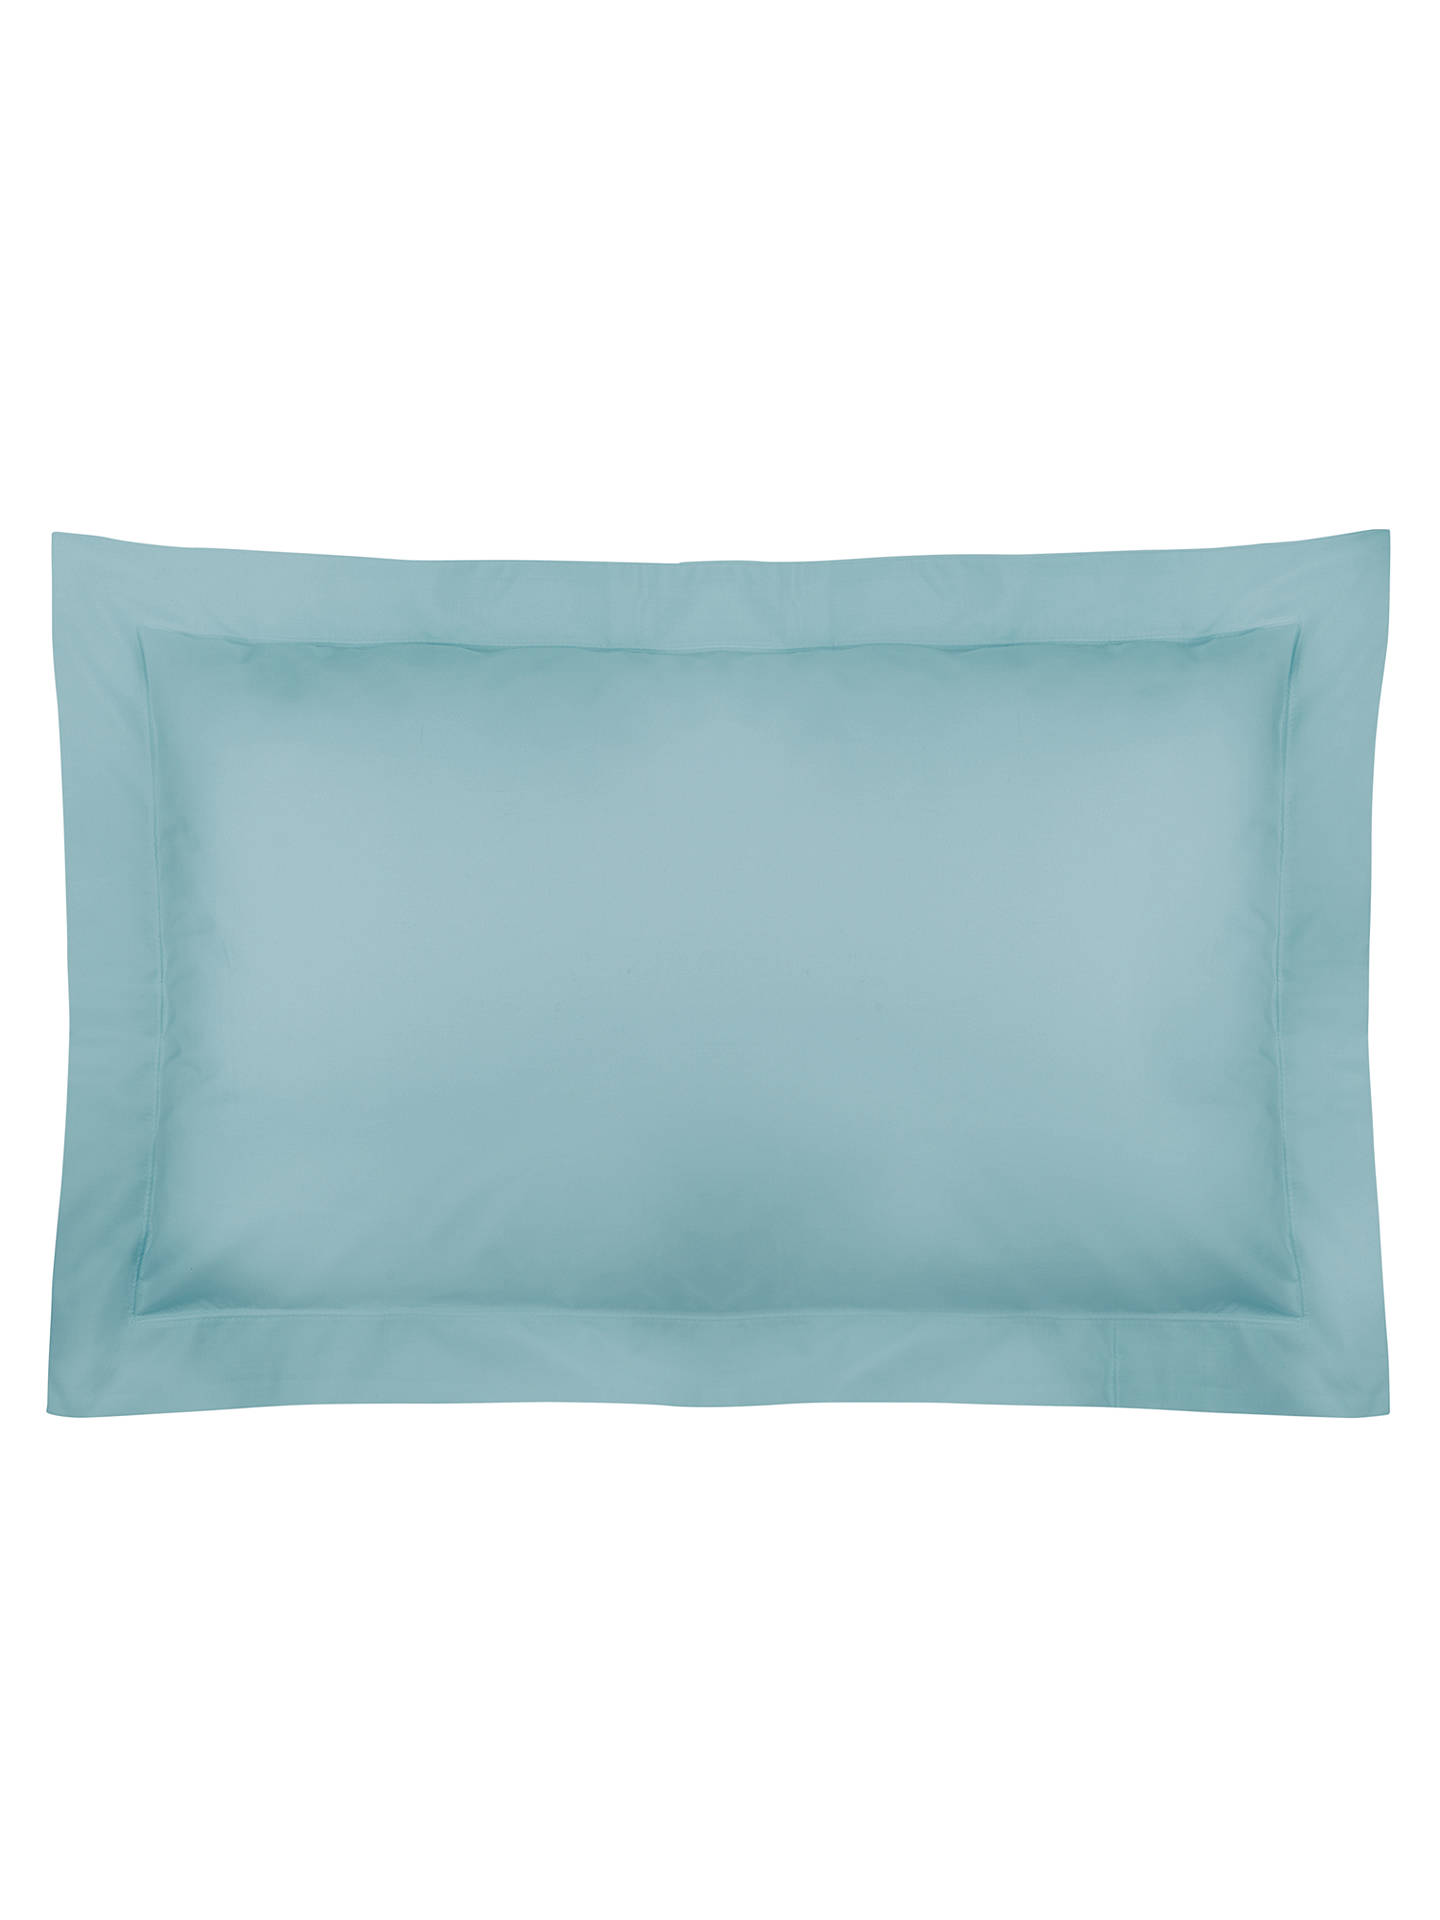 Buy John Lewis & Partners Crisp and Fresh 200 Thread Count Egyptian Cotton Oxford Pillowcase, Duck Egg Online at johnlewis.com